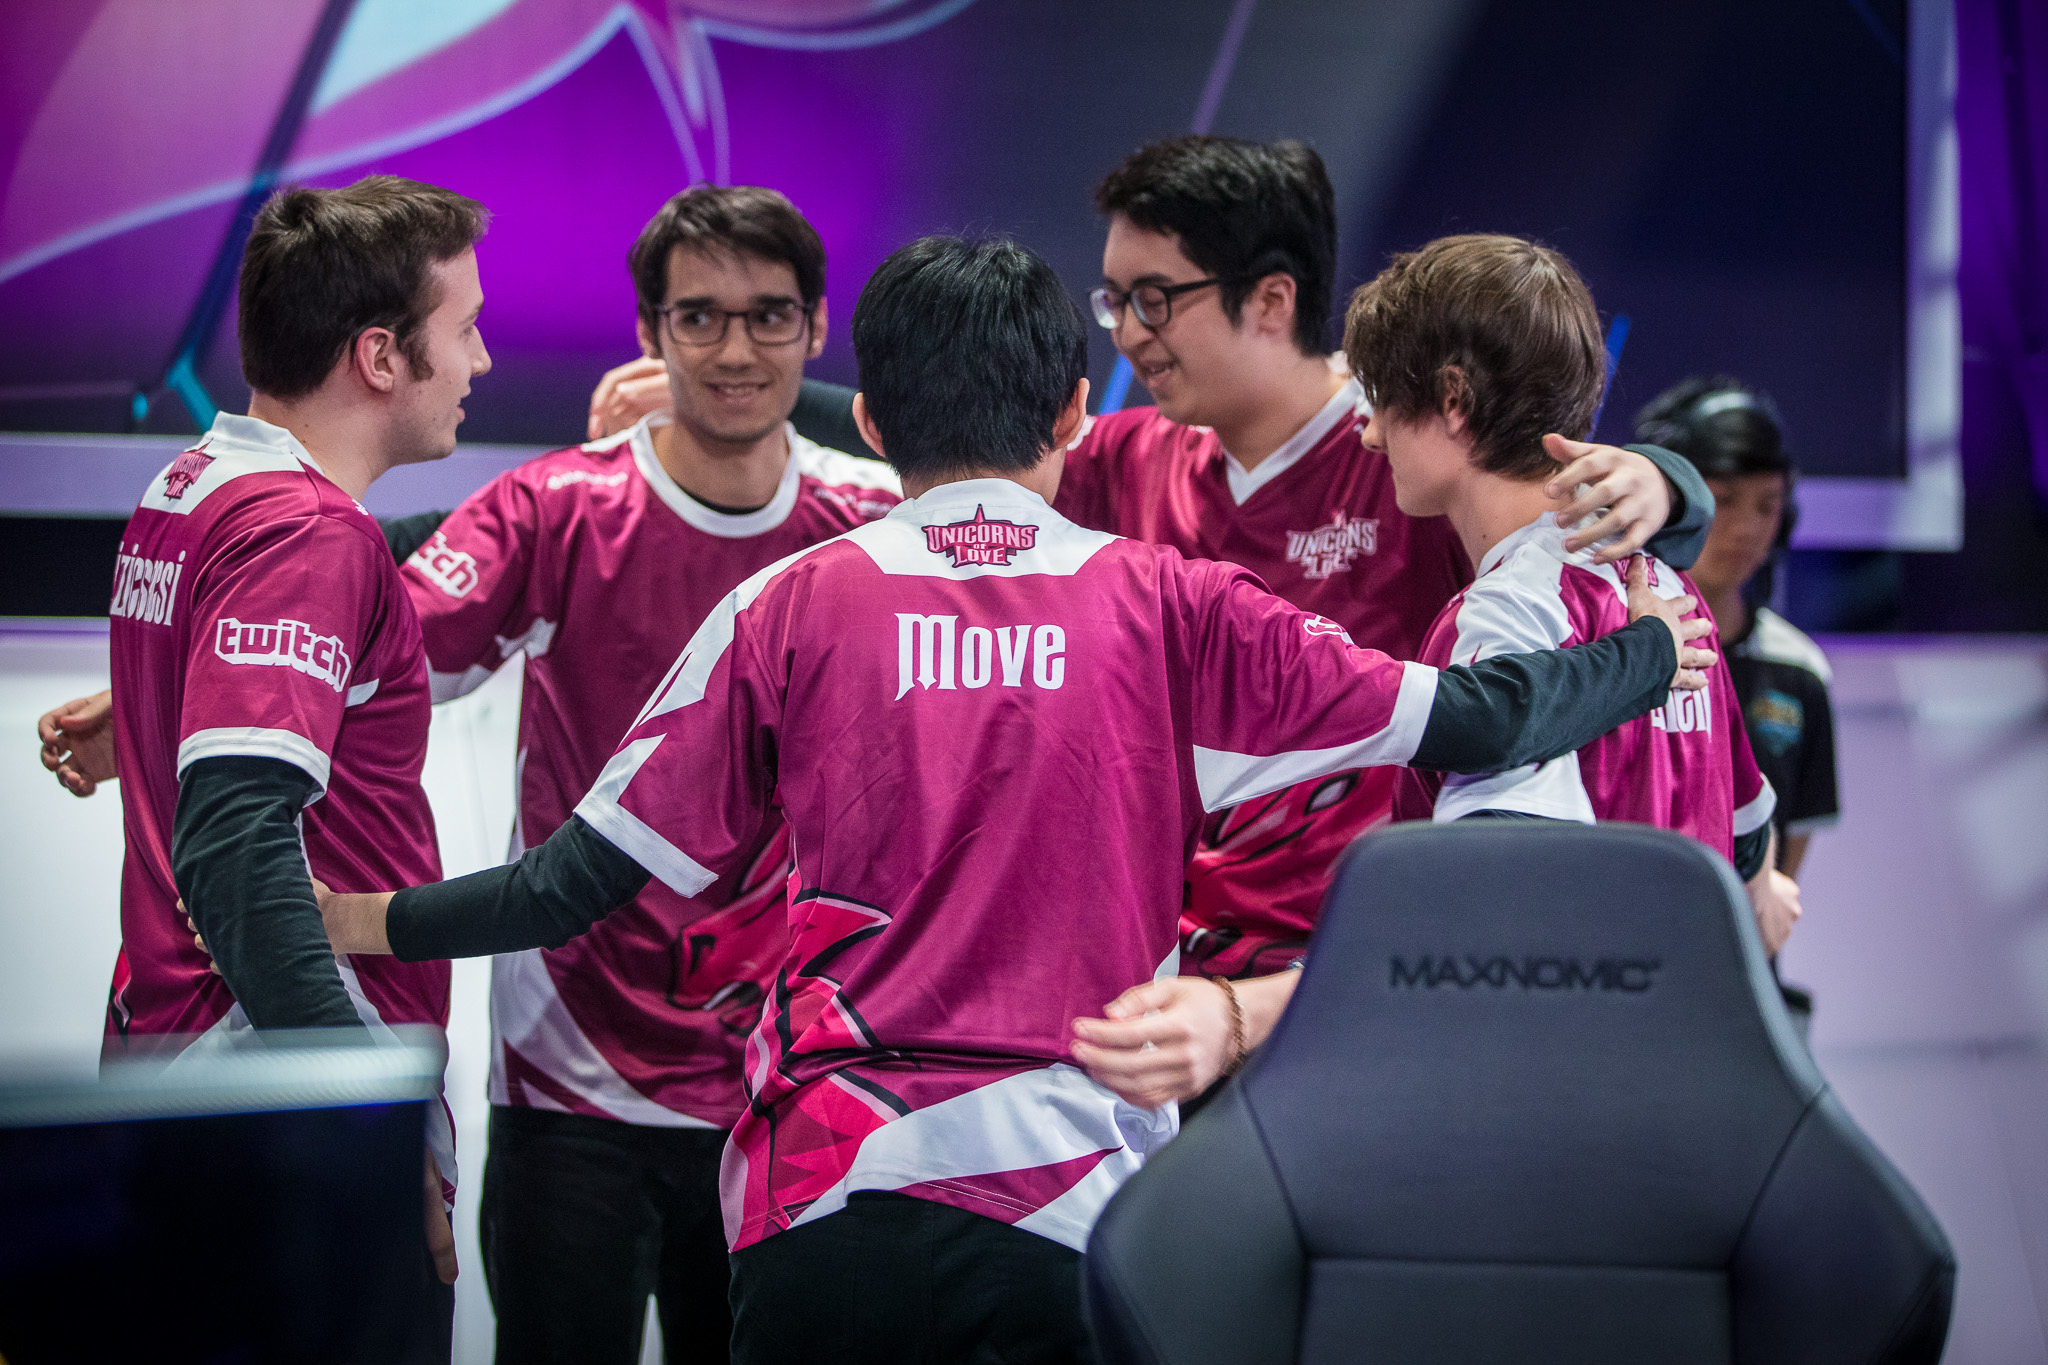 Move on stage with unicorns of love